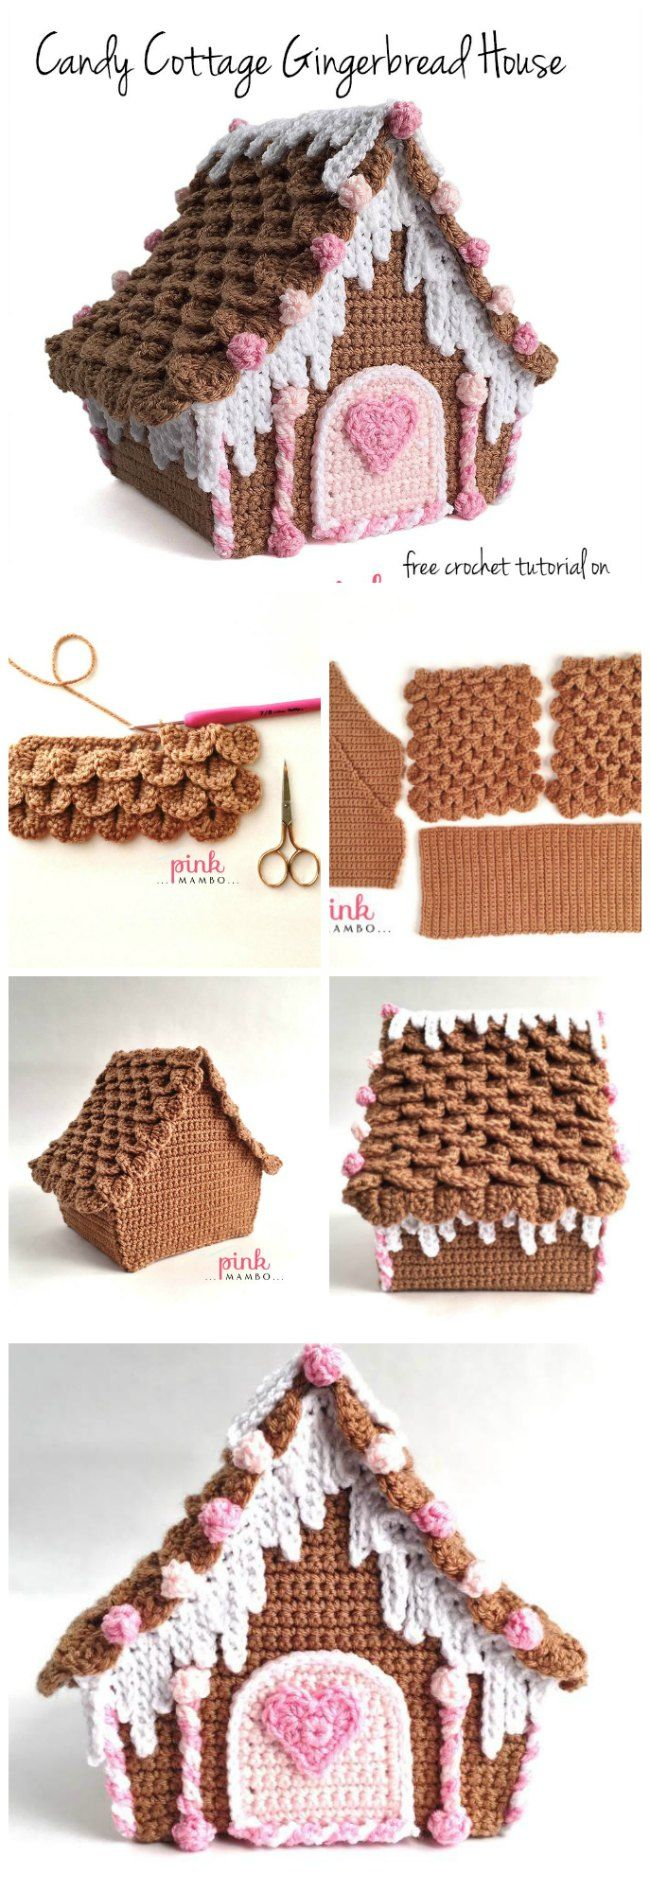 Free crochet pattern for a Candy Covered Gingerbread House. Won't add to your waistline yet looks super-yummy for Christmas and the holidays. 3 part tutorial.